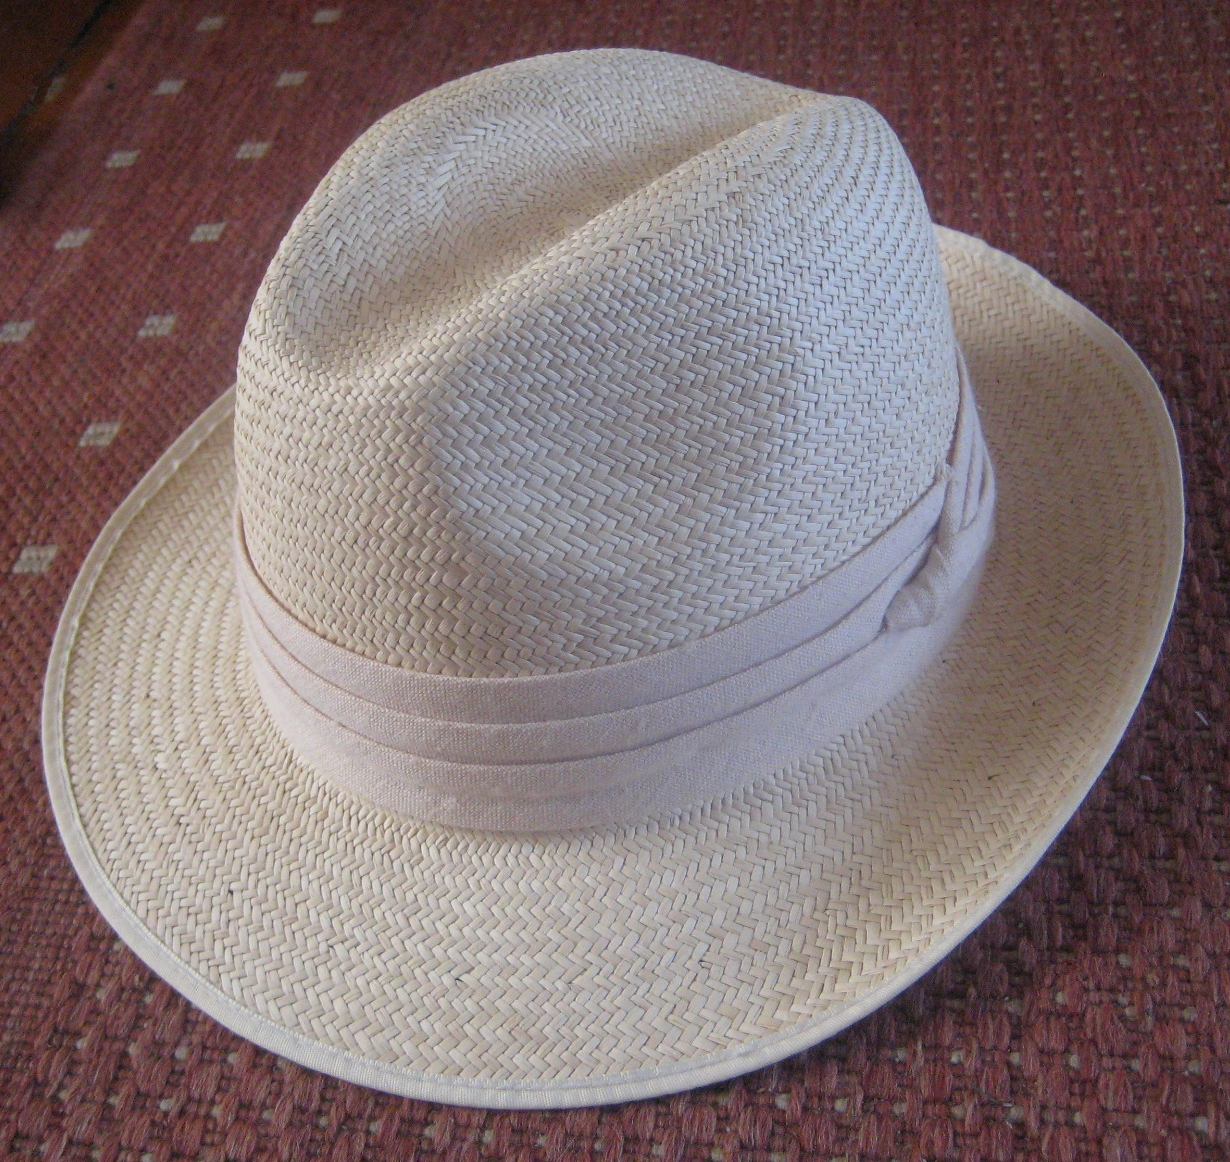 Panama hat - Wikipedia